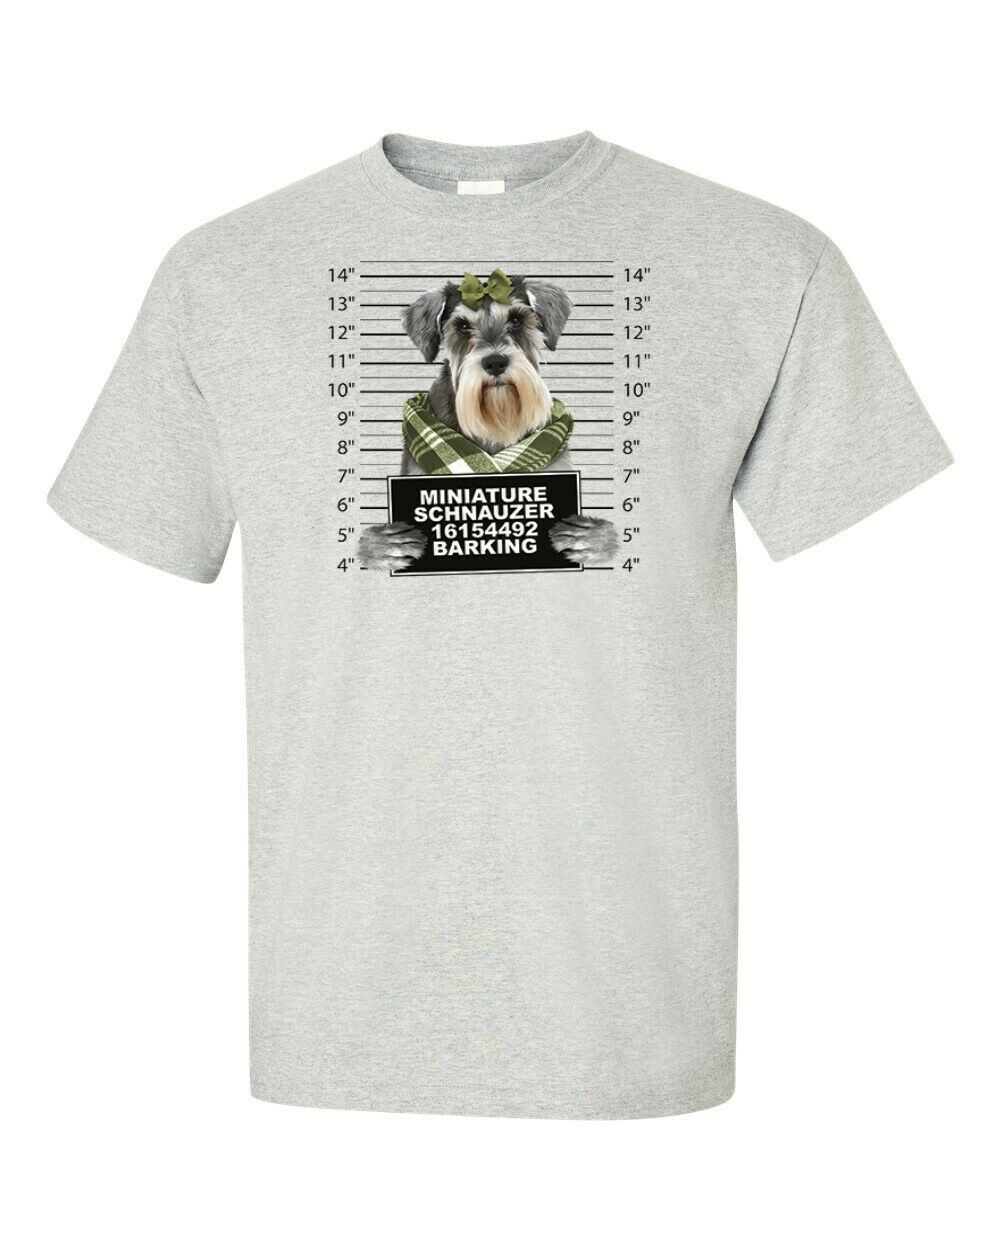 Funny T Shirt Miniature Schnauzer Mugshot Crime Barking In Many Colors